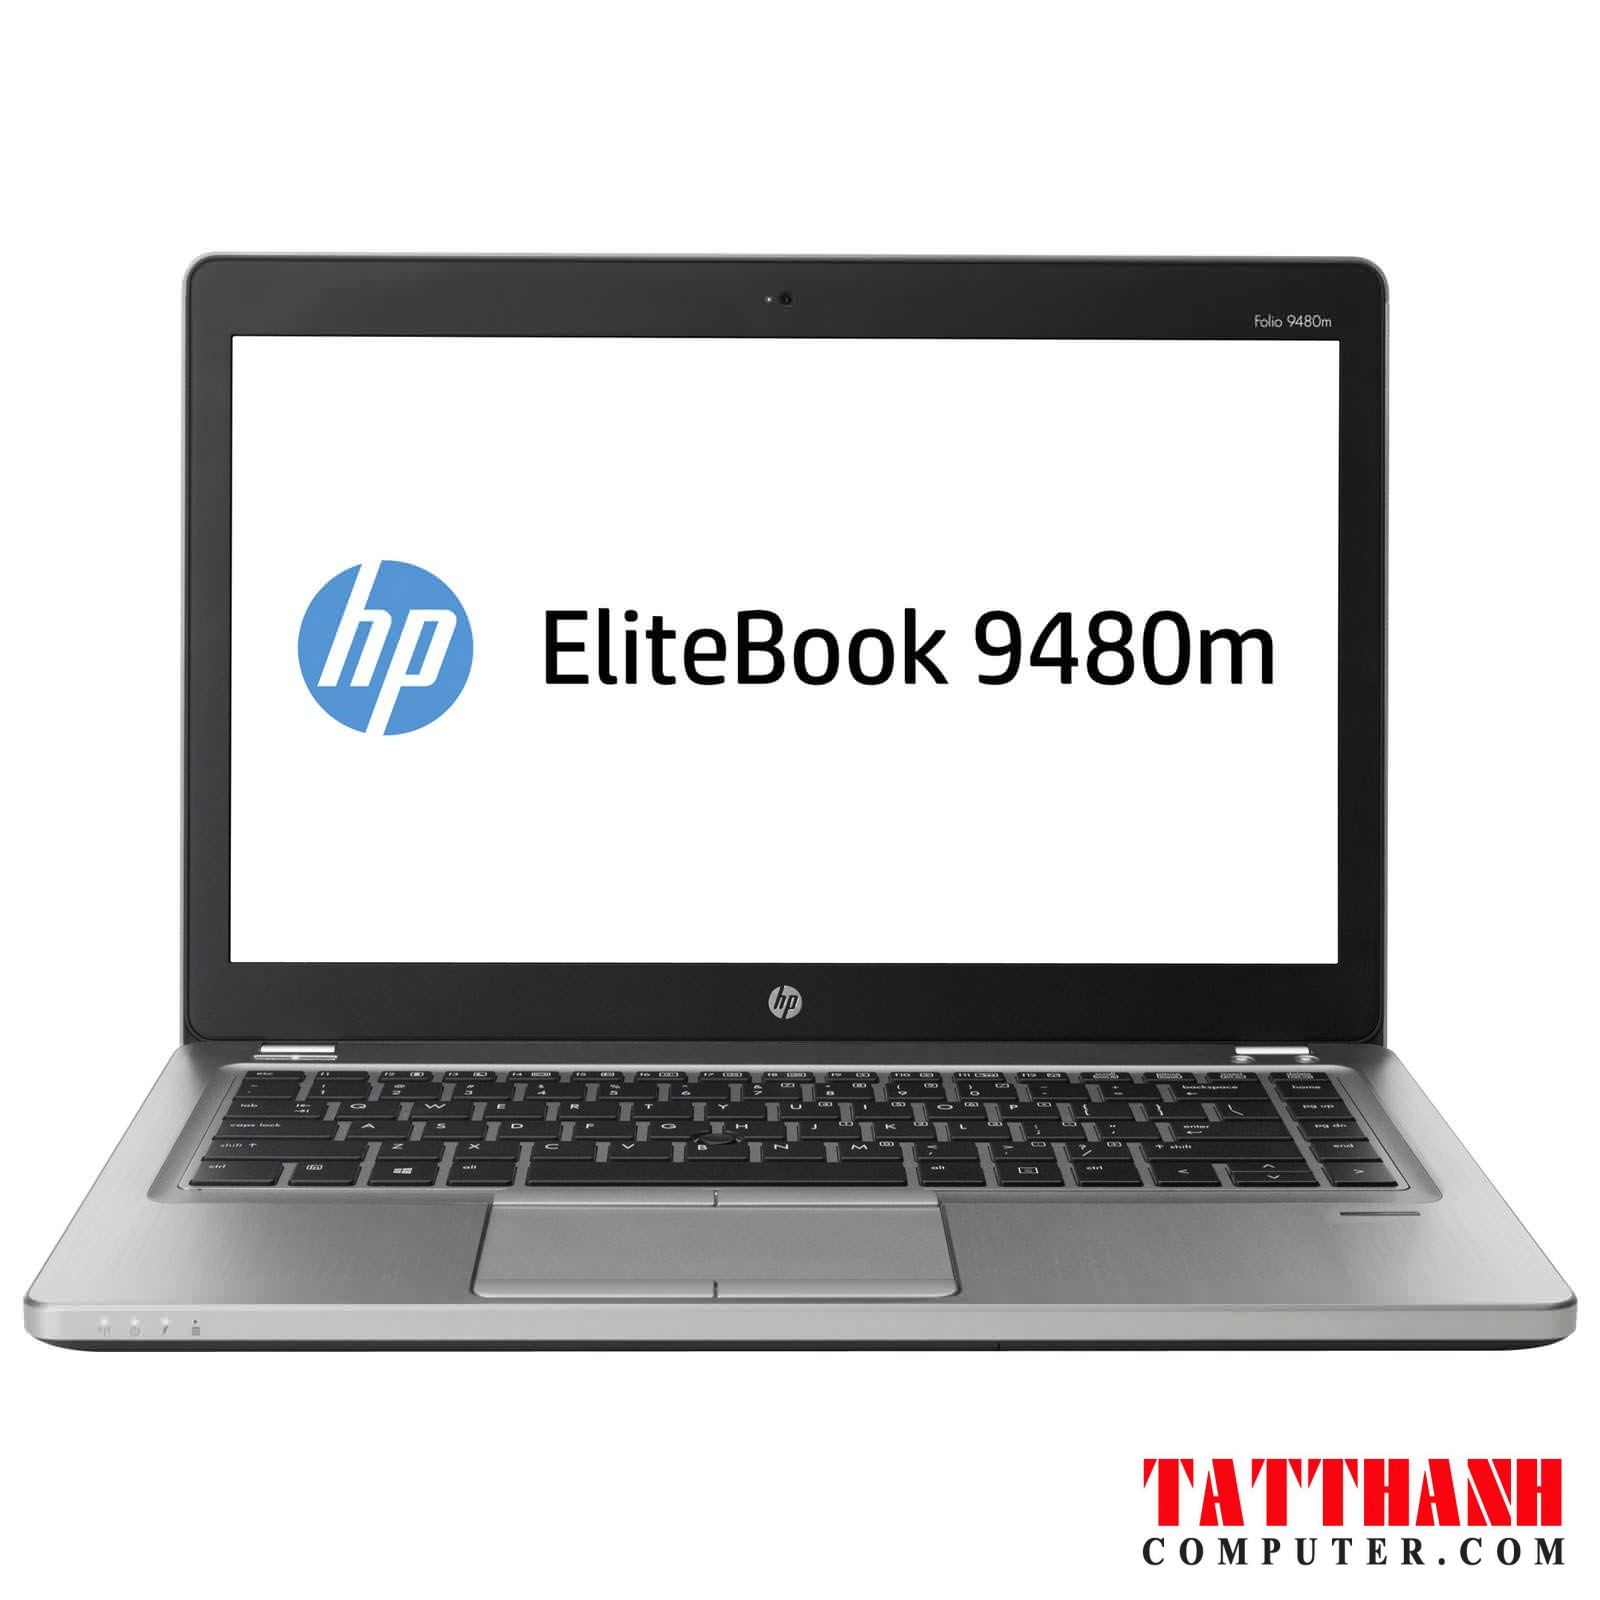 hp folio 9480m intel core i5 4310u 2ghz 2gb ram 250gb hdd vga intel hd graphics 4400 14 inch windows xp7810 4131 3272